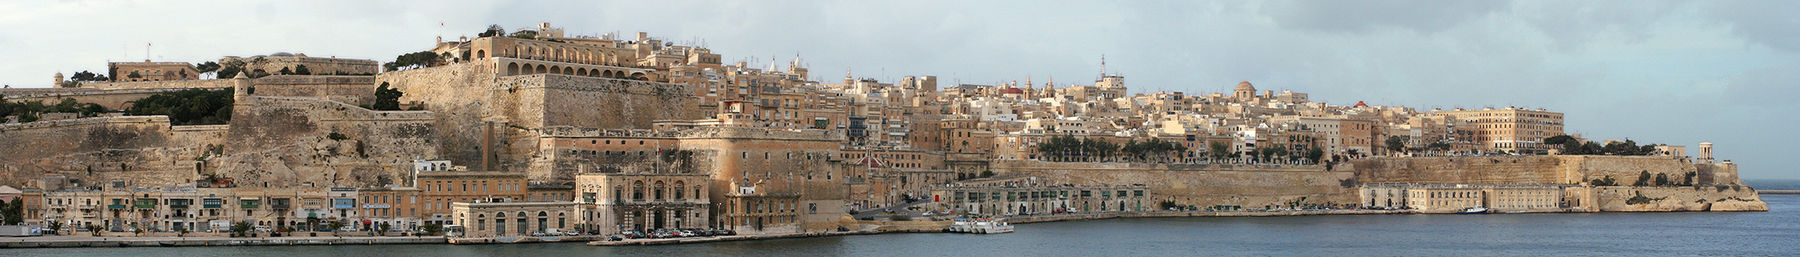 Valletta banner View from Senglea.jpg